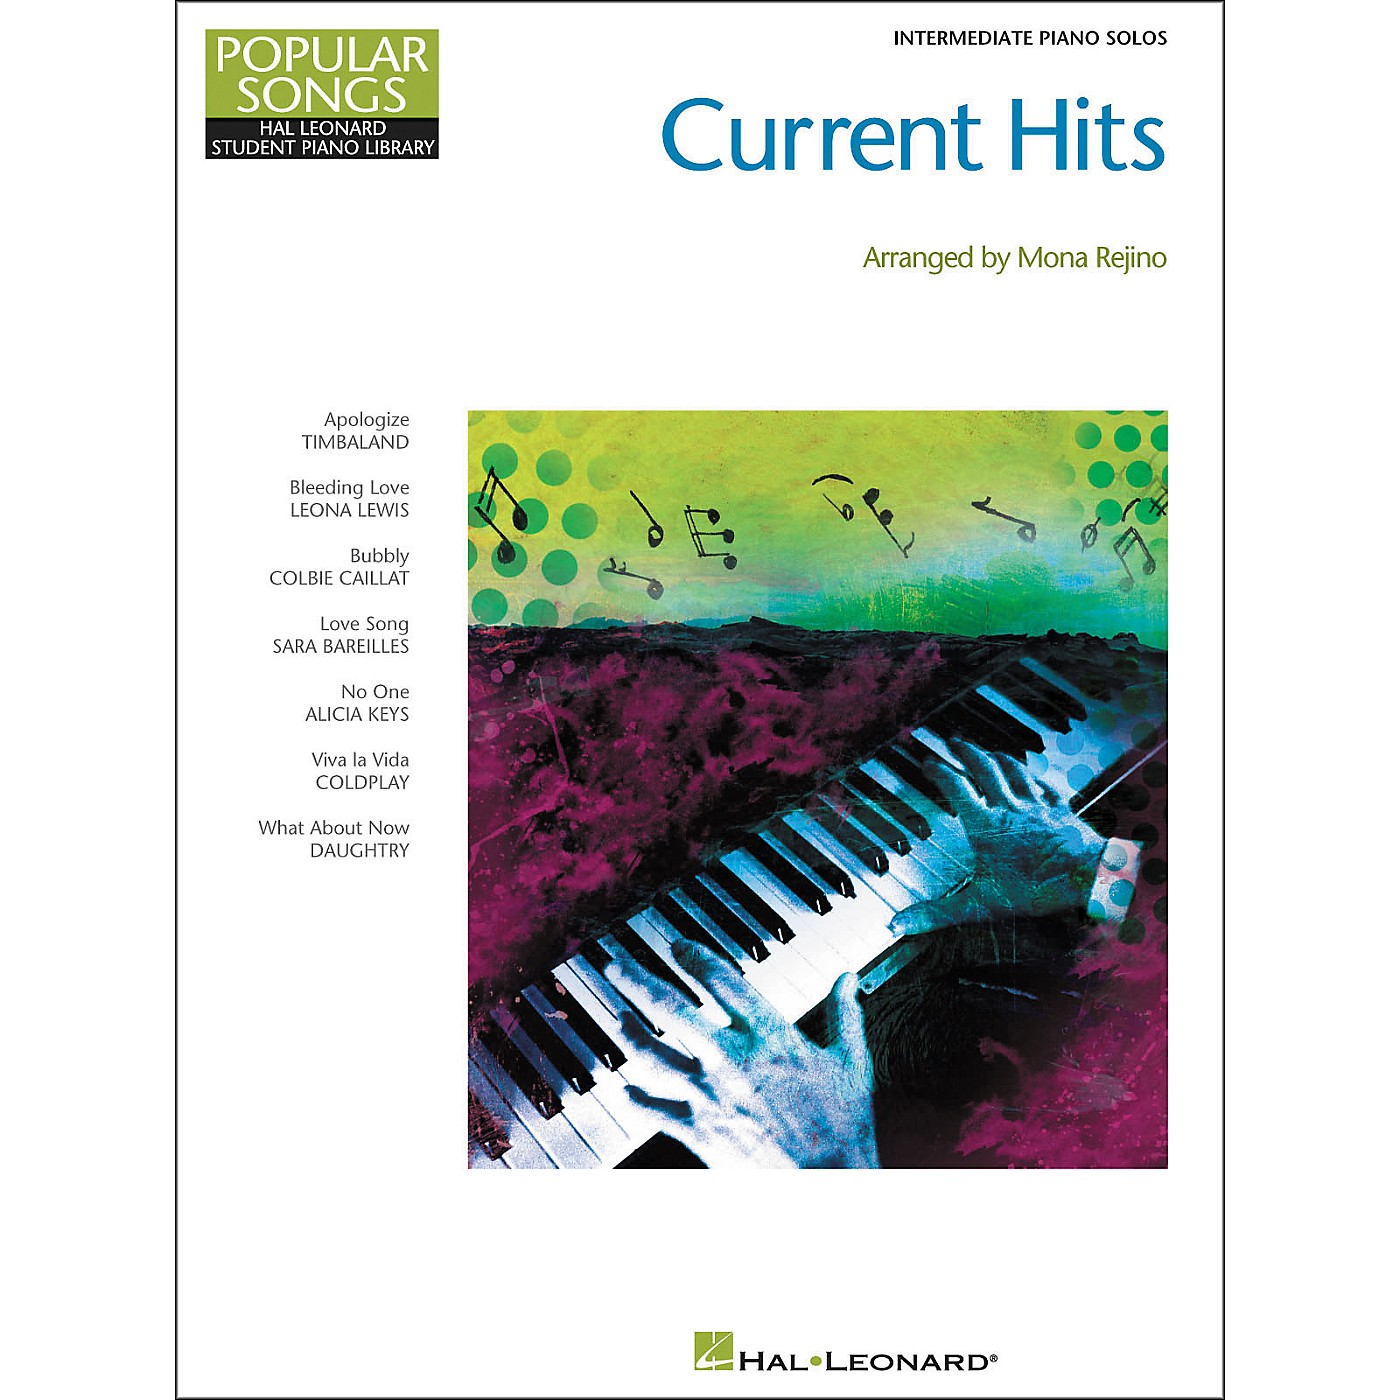 Hal Leonard Current Hits - Popular Songs Series (Intermediate Piano) by Mona Rejino thumbnail